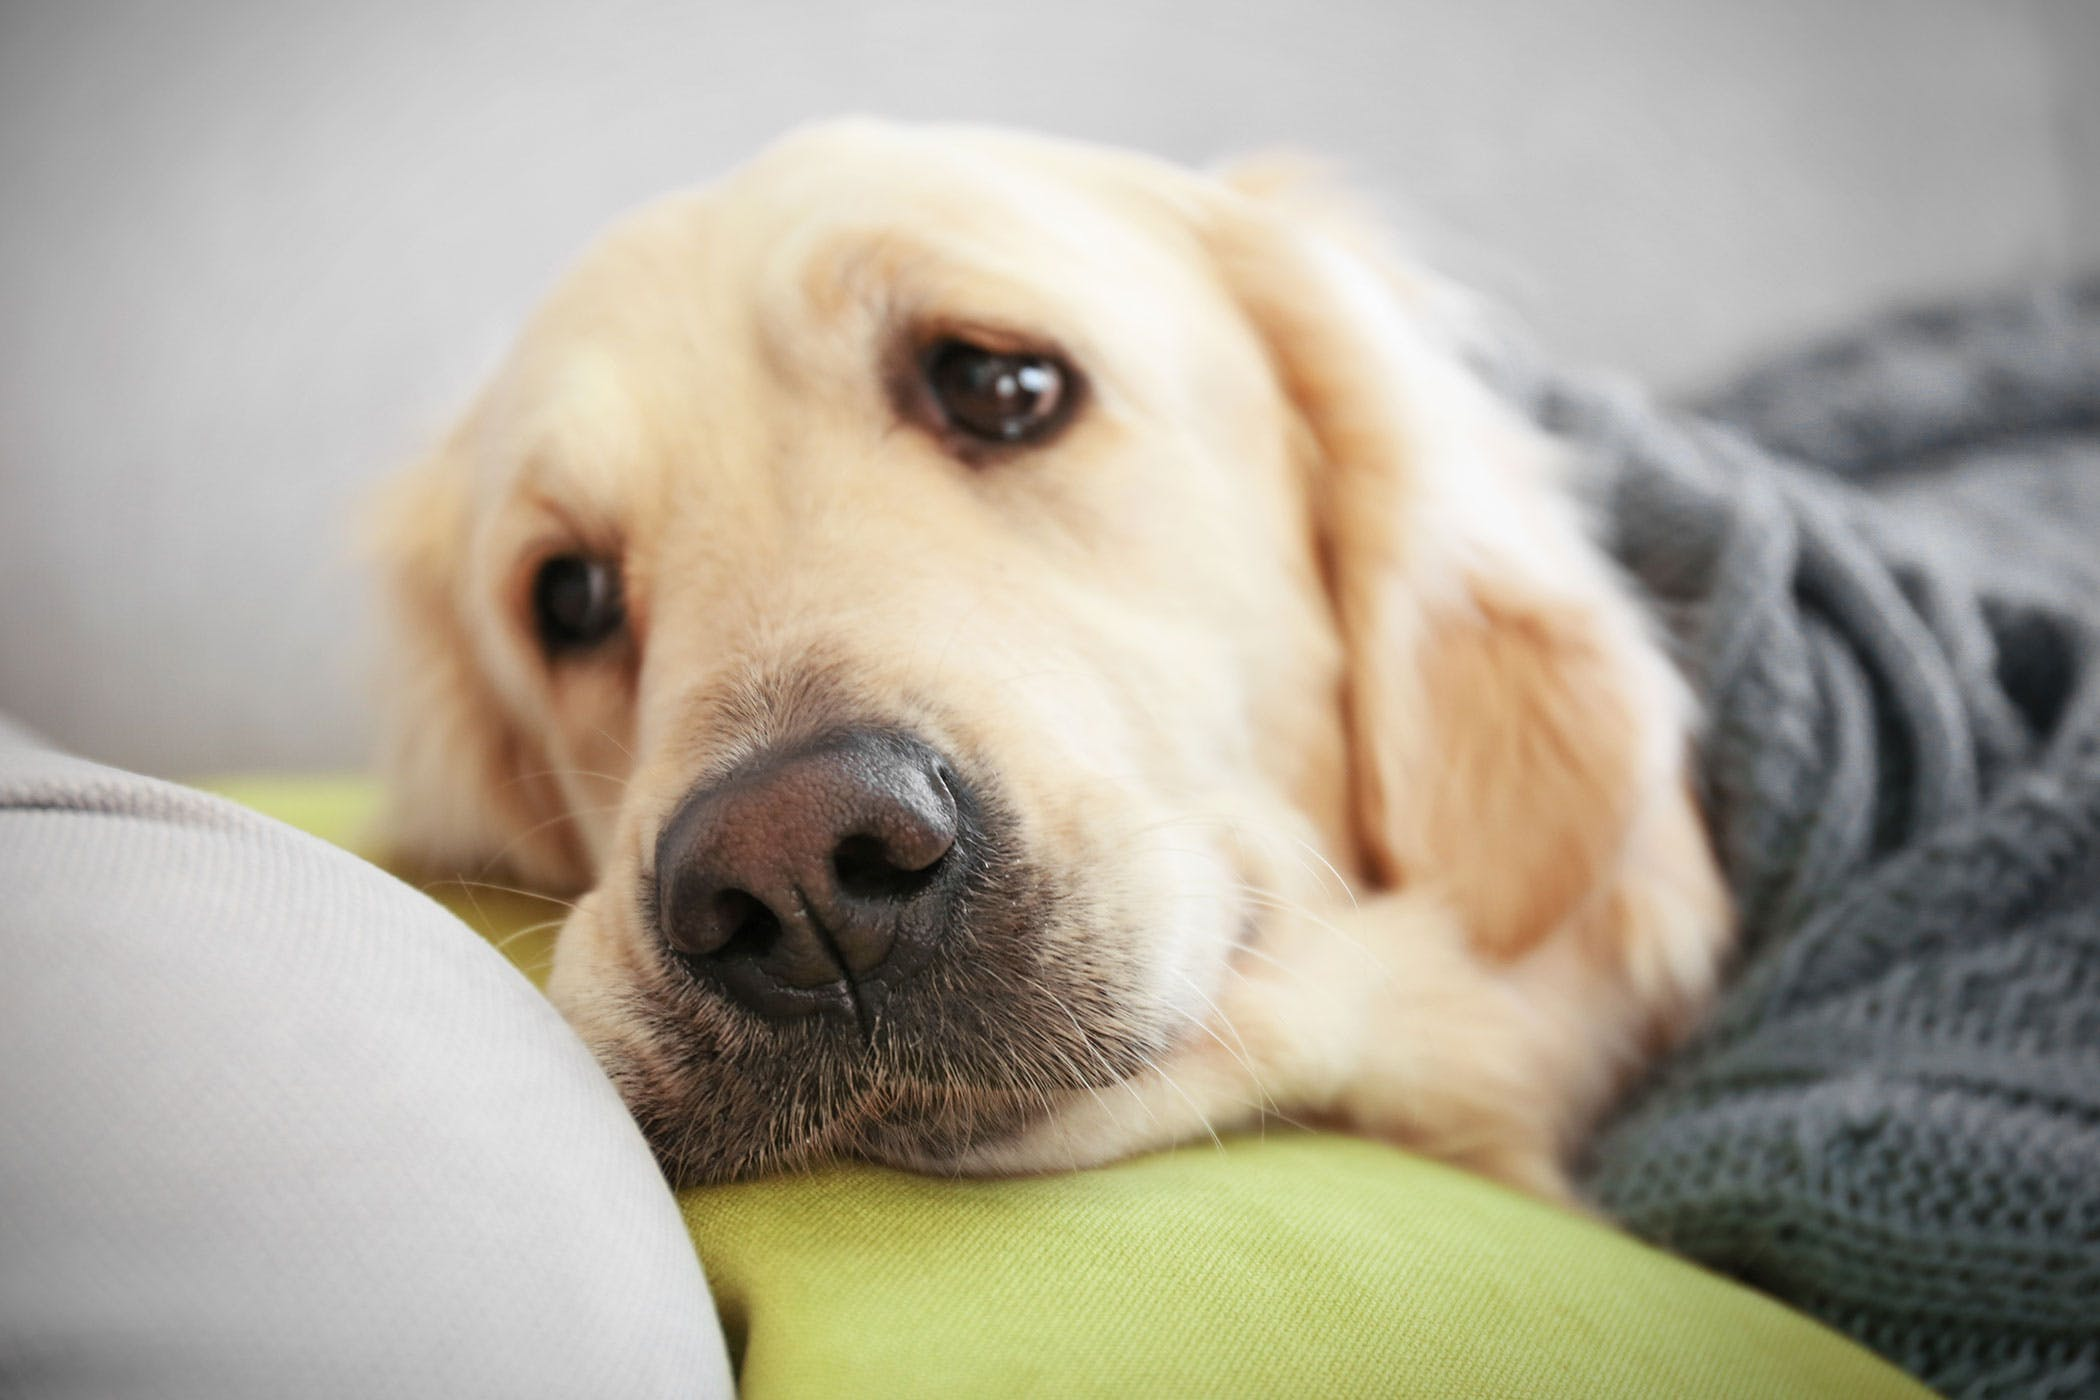 parasitic drug ivermectin poisoning in dogs symptoms causes